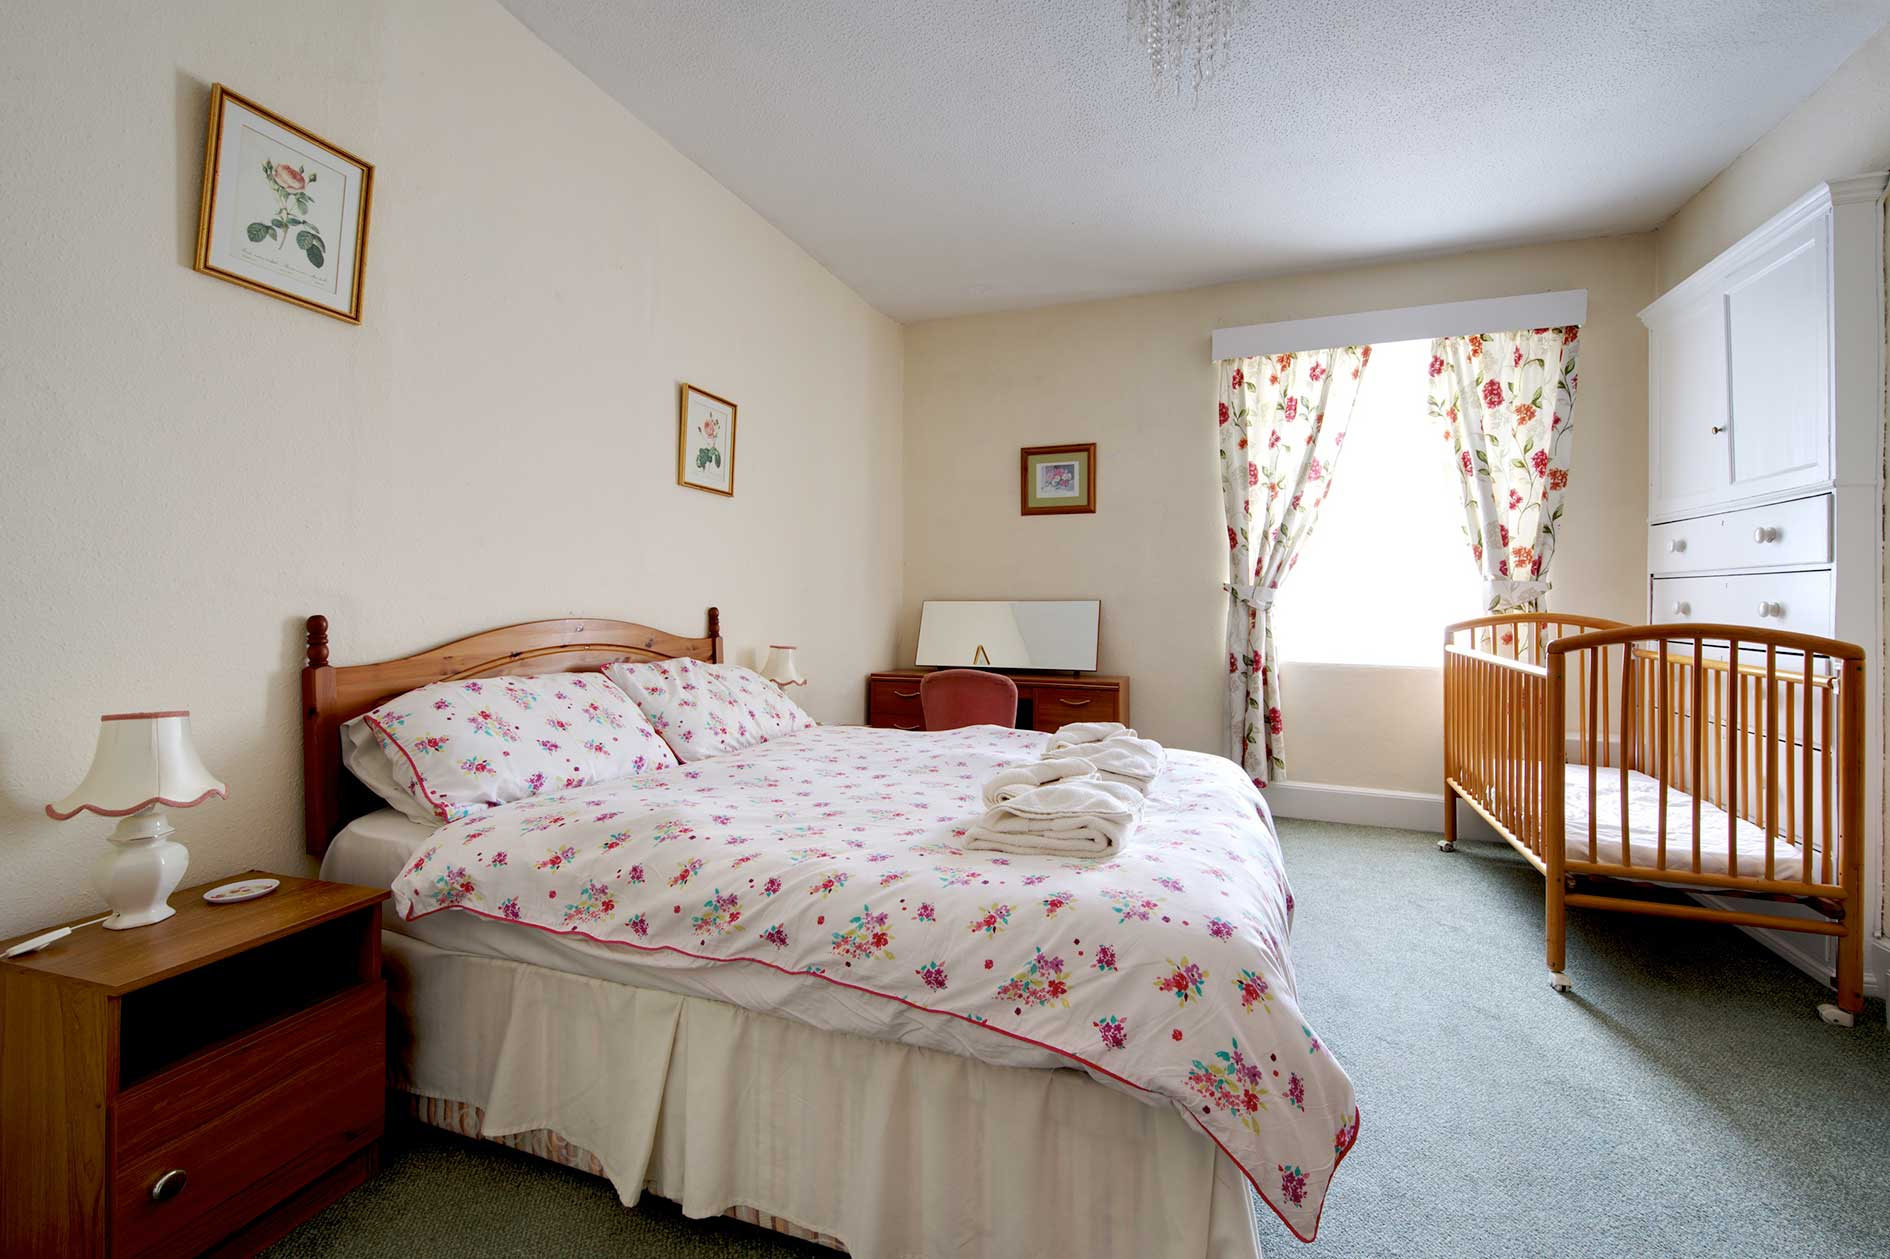 Light Bedroom Containing A Double Bed With Red Flower Covers And Curtains Plus Wooden Furniture Including A Cot